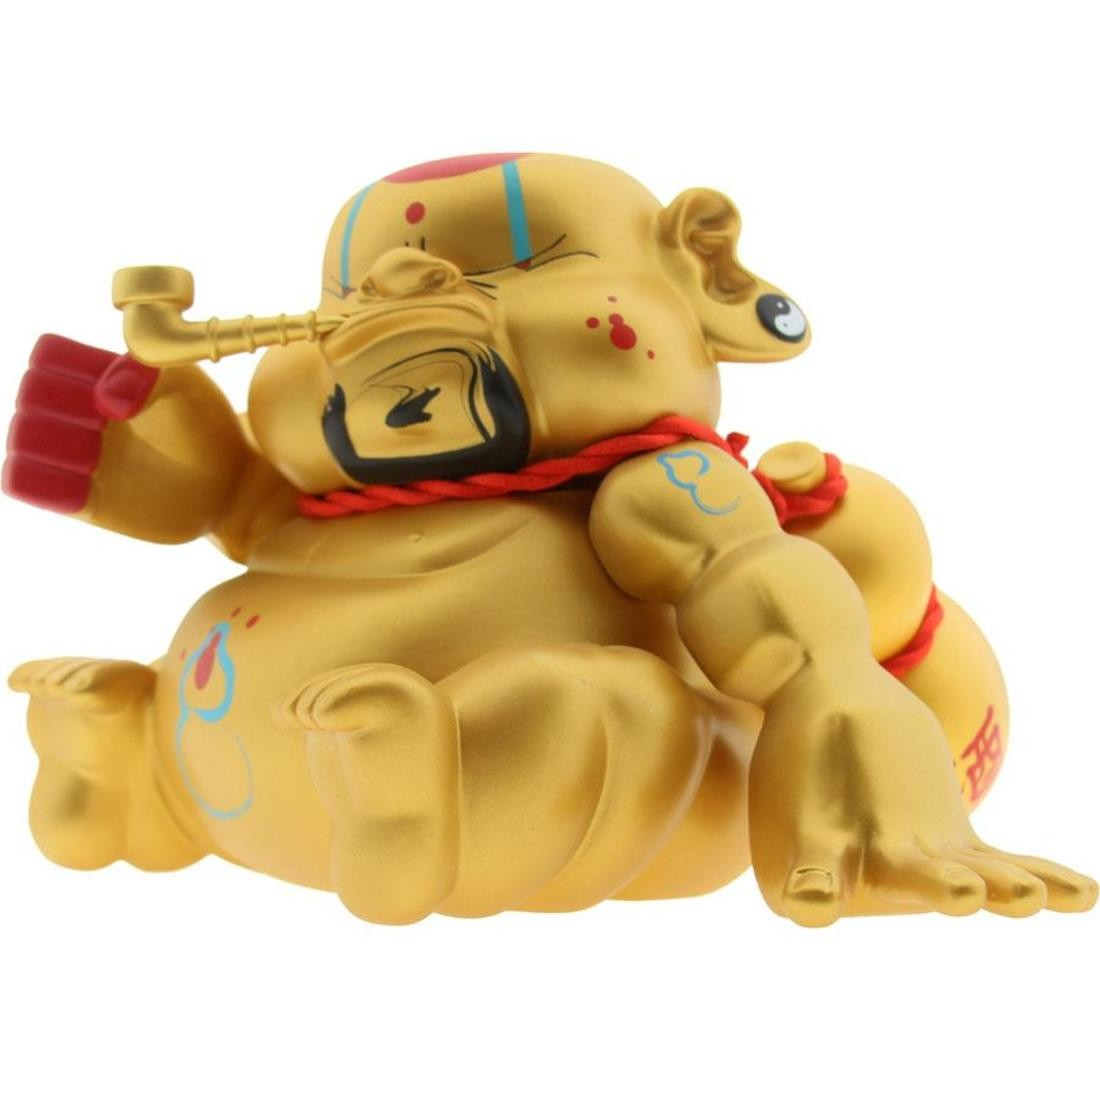 BeeFy Bad Bad Buddha Vinyl Figure (gold)